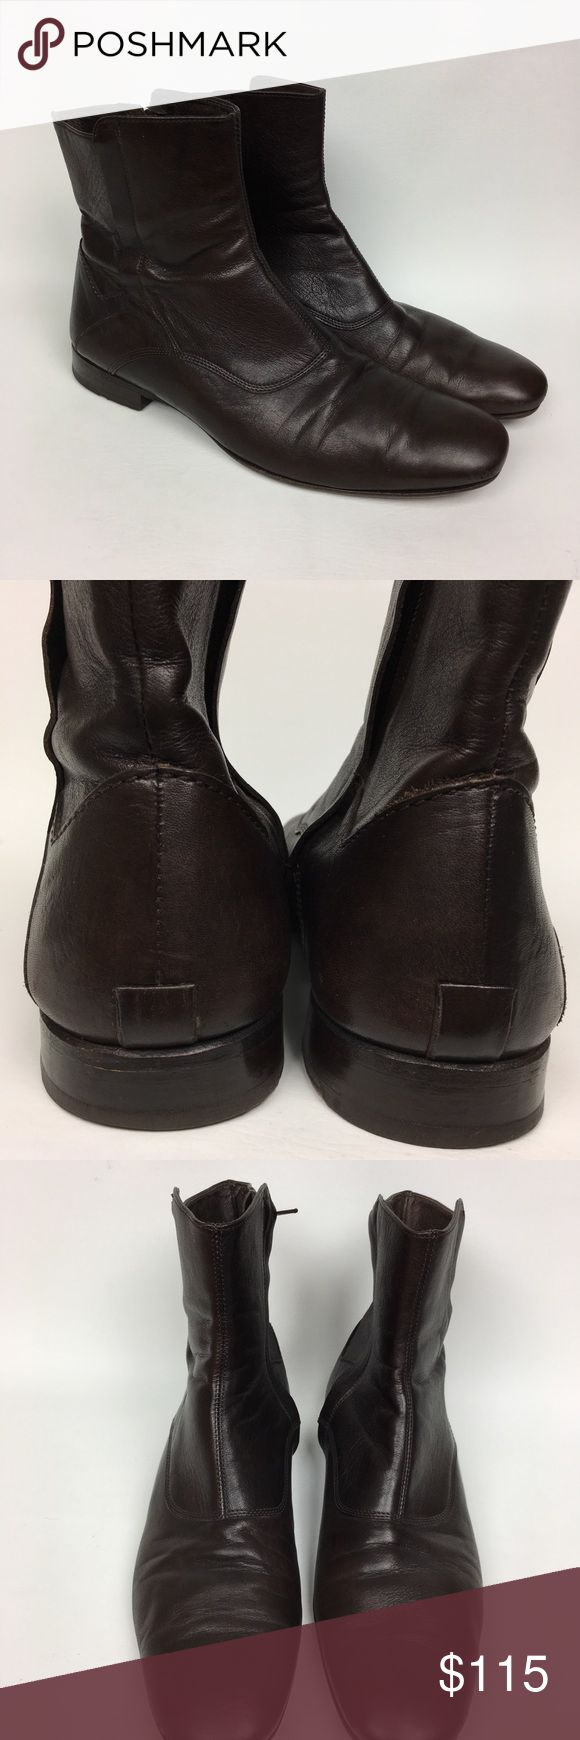 Reiss Sz 9/42 Brown Leather Zip Booties Men's Pre owned condition, some scuffs, see the last picture for details. Reiss Shoes Boots